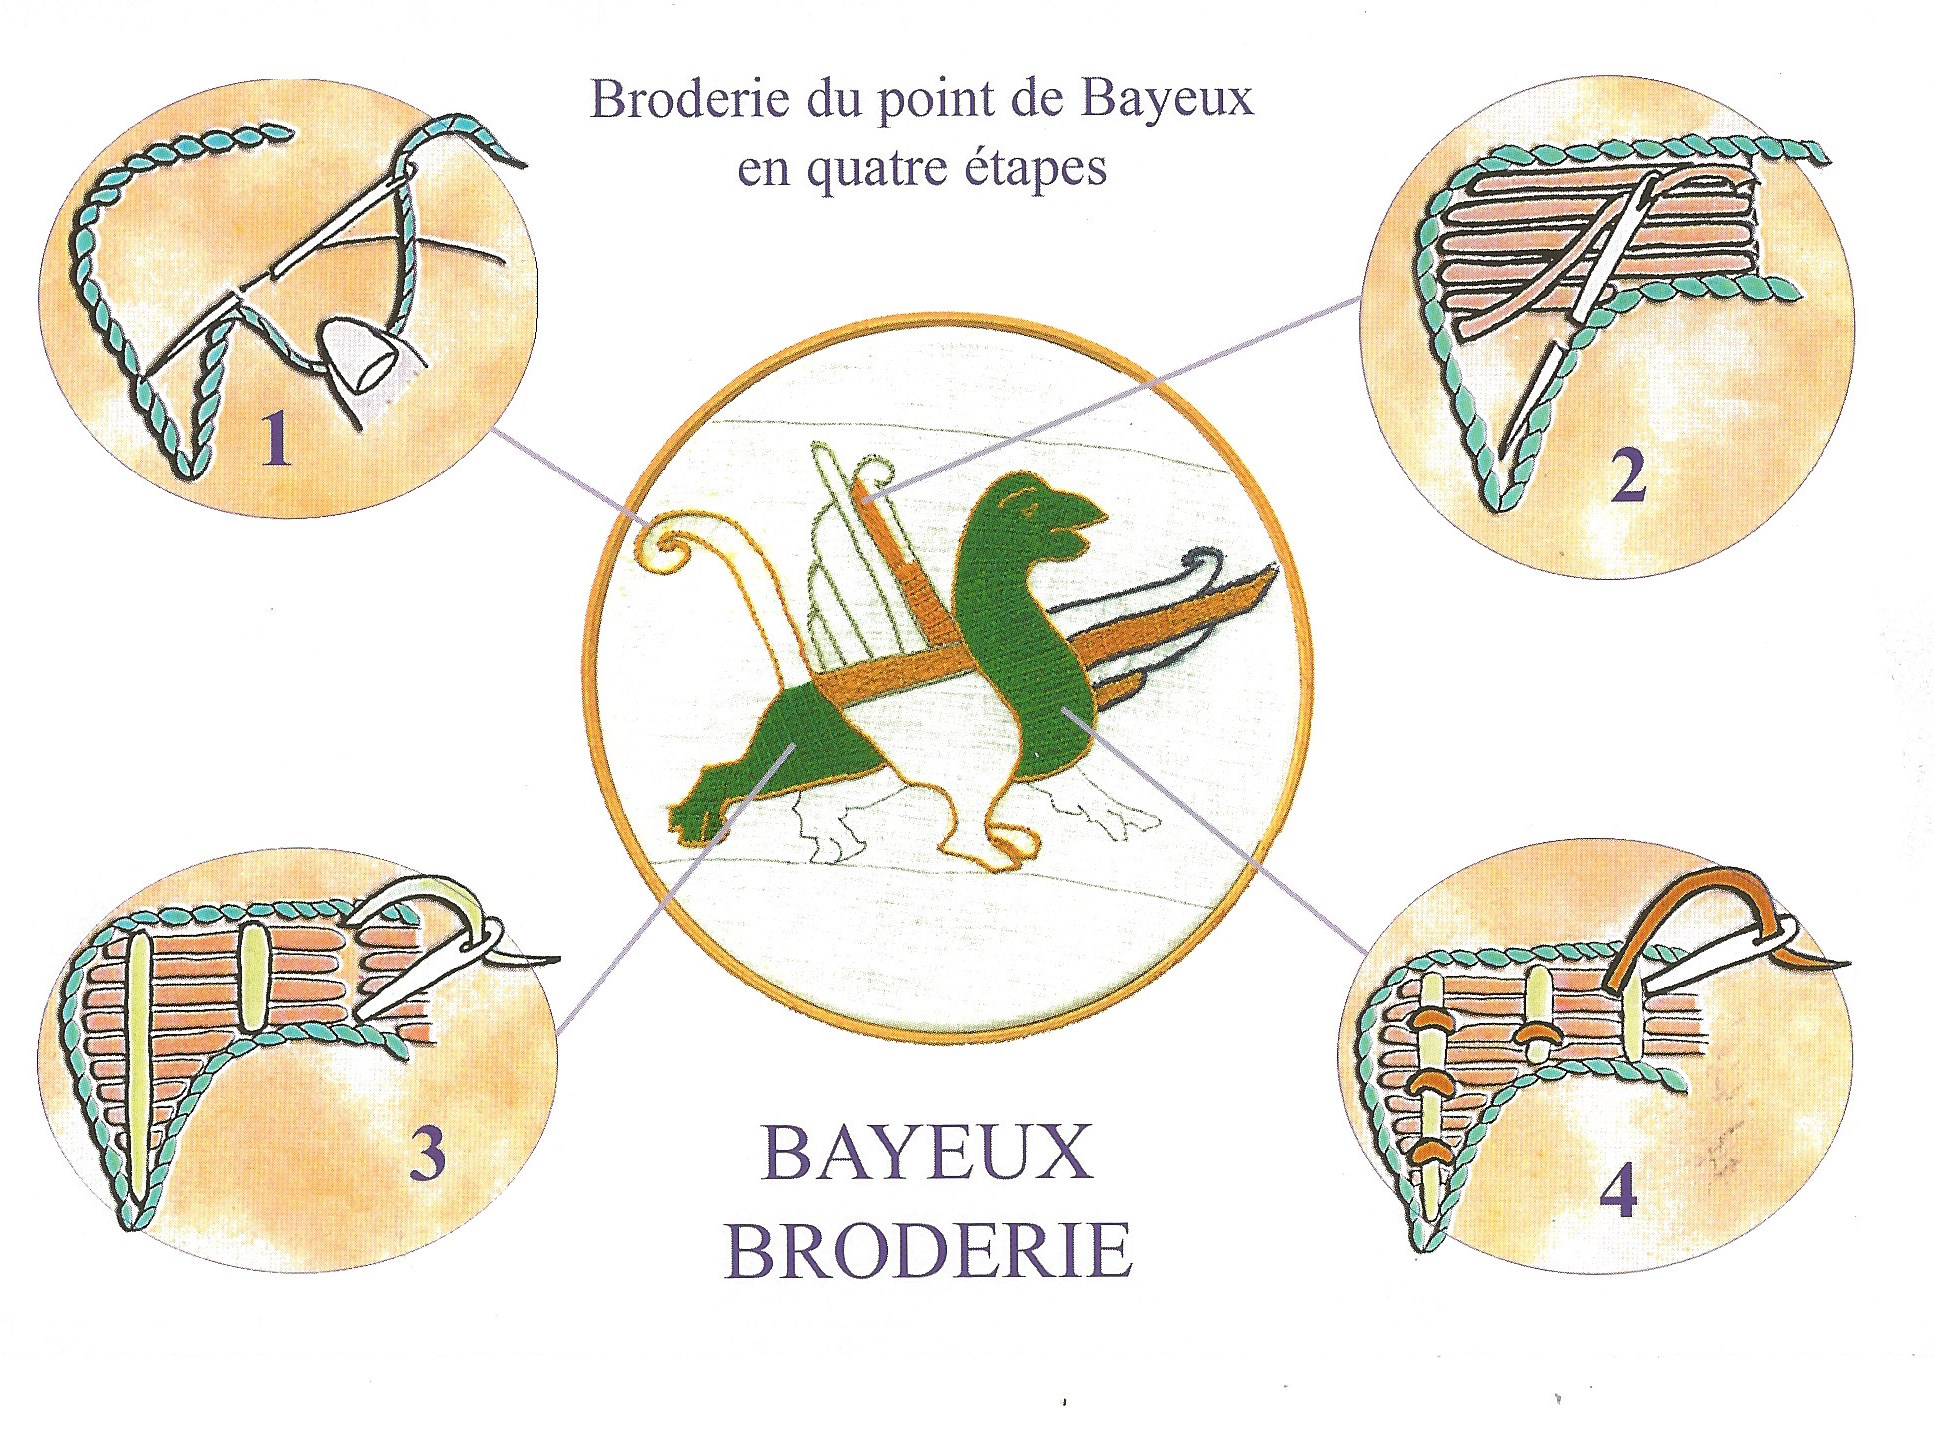 Facts about our copy of the Bayeux Tapestry.